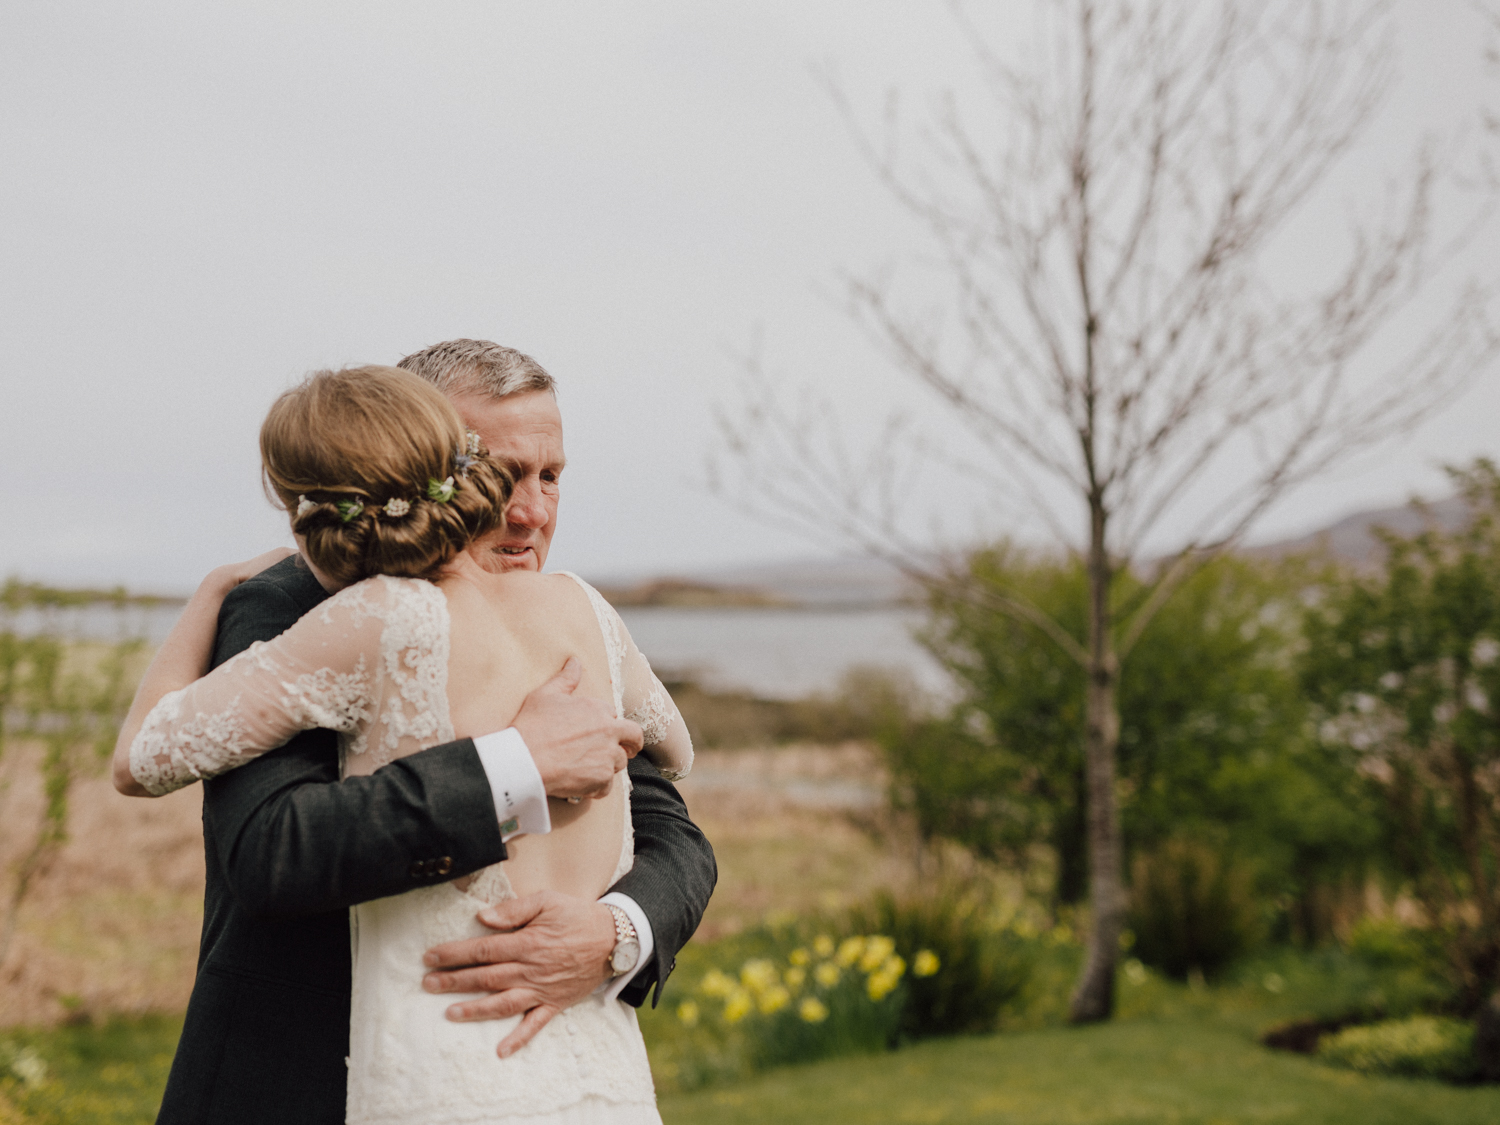 capyture-wedding-photographer-destination-nature-intimate-wedding-isle-of-skye-scotland-140